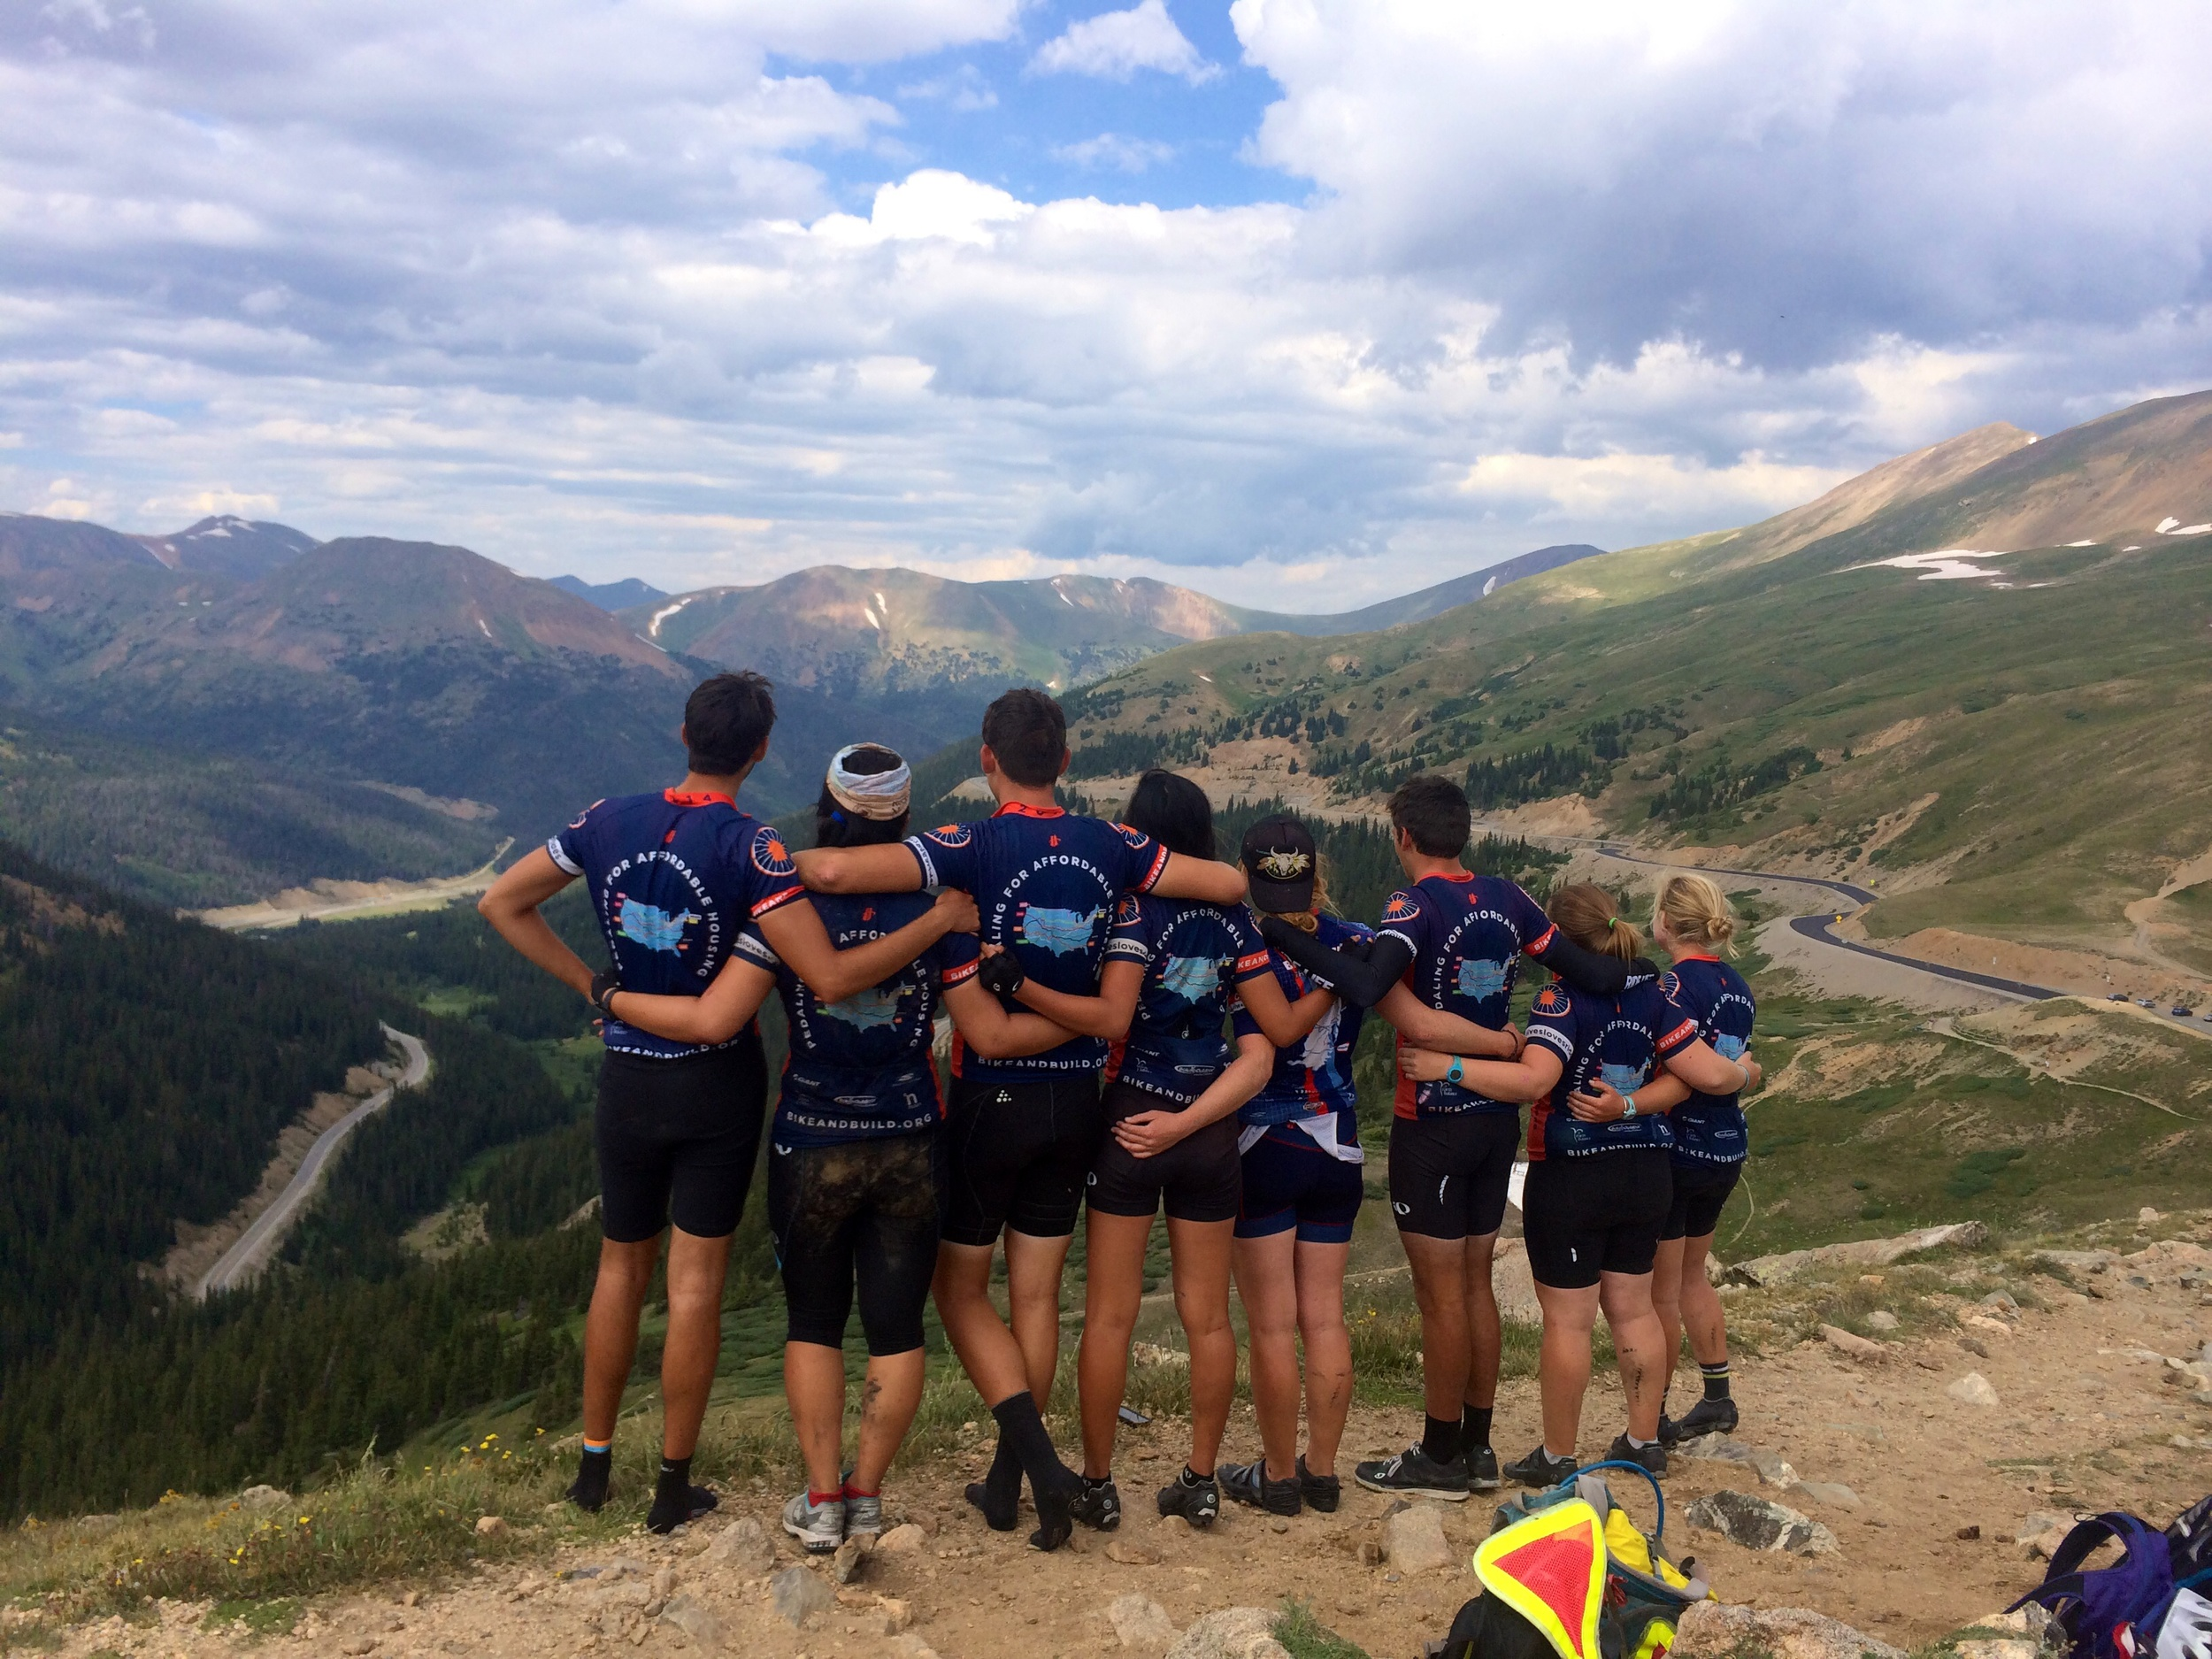 Looking at the road we just climbed up, and admiring the view we worked so hard for!